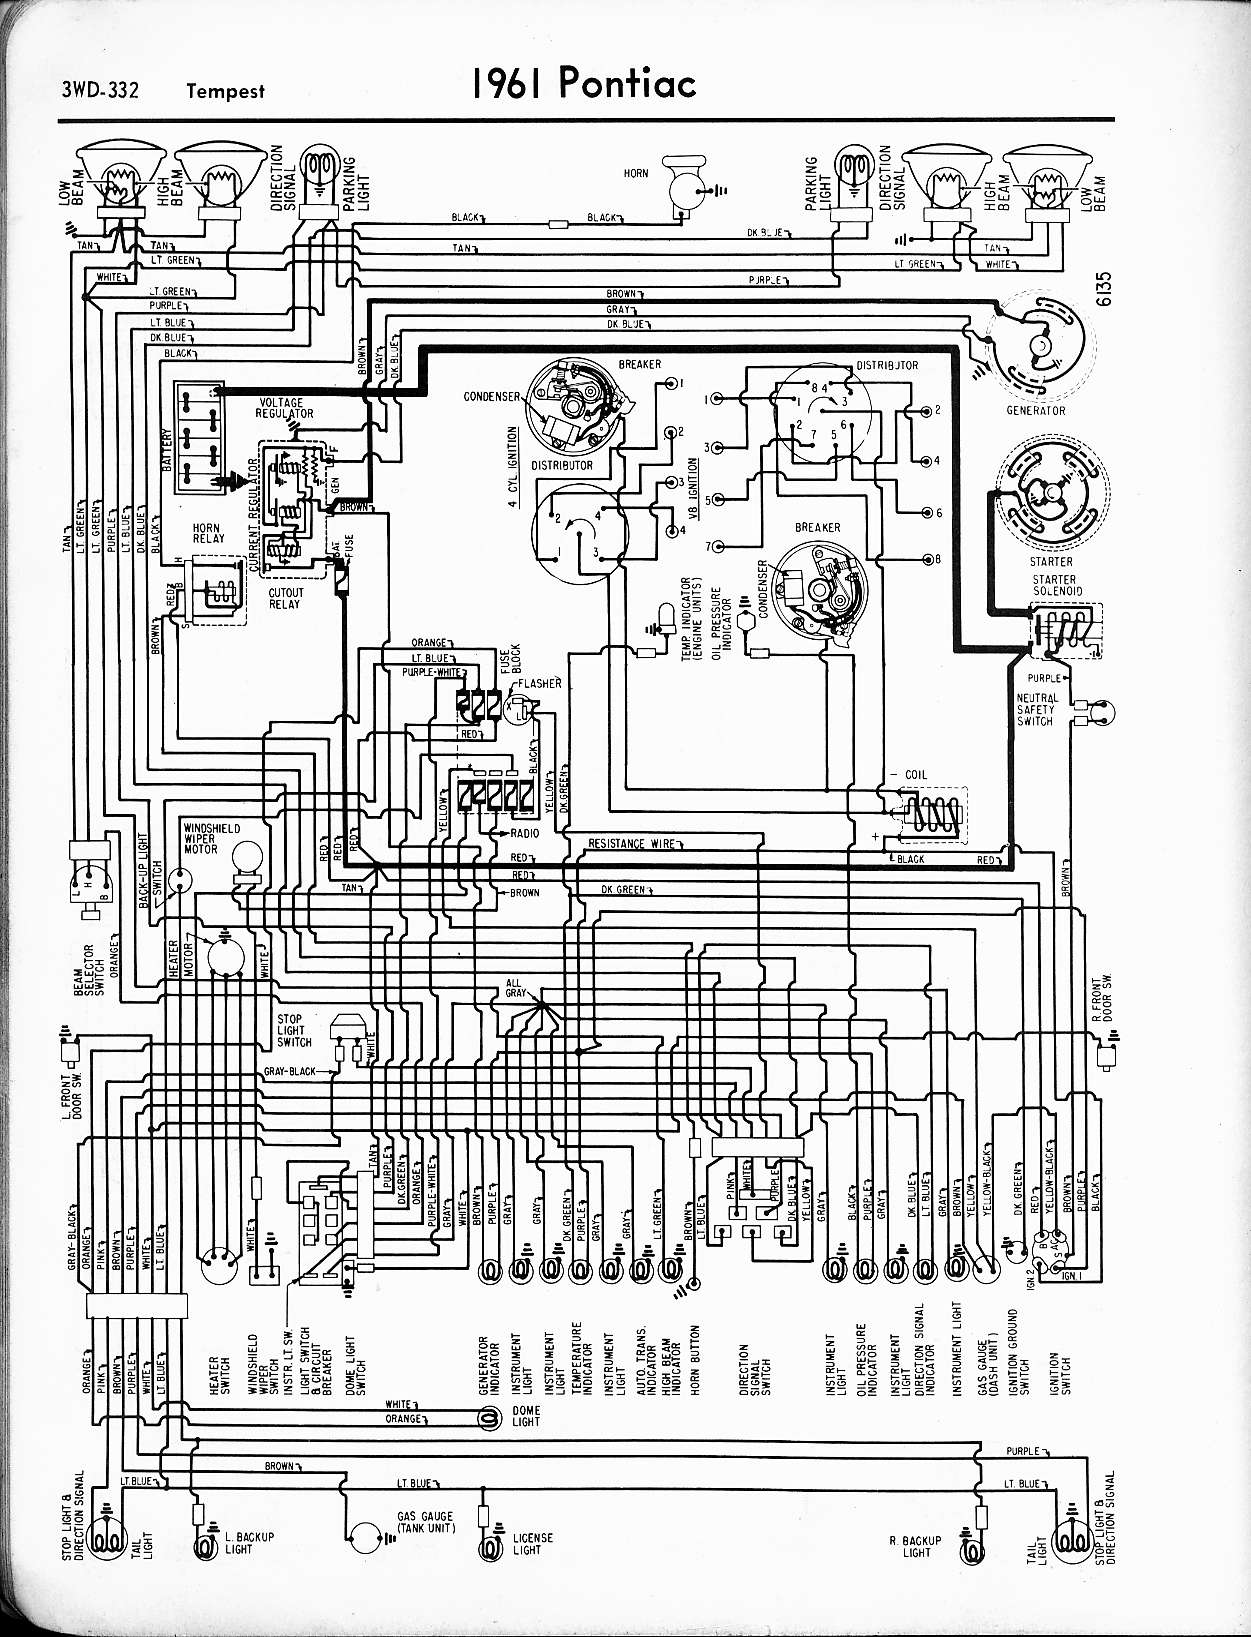 1957 Pontiac Wiring Harness Nice Place To Get Diagram Hayabusa In Addition Mastercraft On Wallace Racing Diagrams Rh Wallaceracing Com 1955 Chieftain